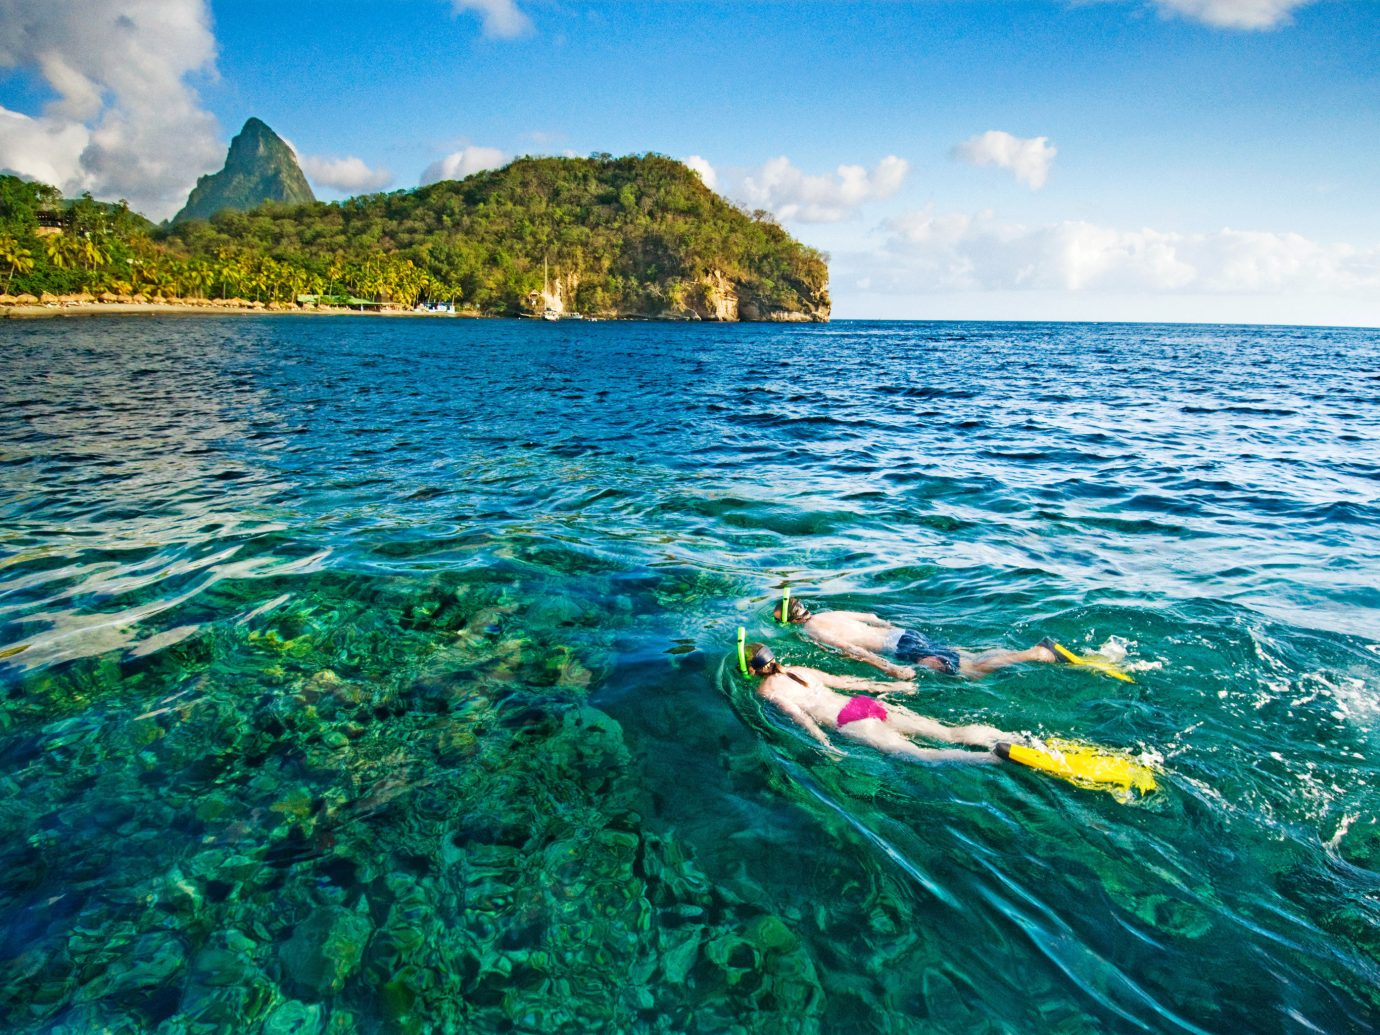 Adventure Family Hotels Island Luxury Outdoor Activities Outdoors Romance Trip Ideas water outdoor sky Sea body of water Ocean shore Coast bay islet cape cove archipelago boating wave